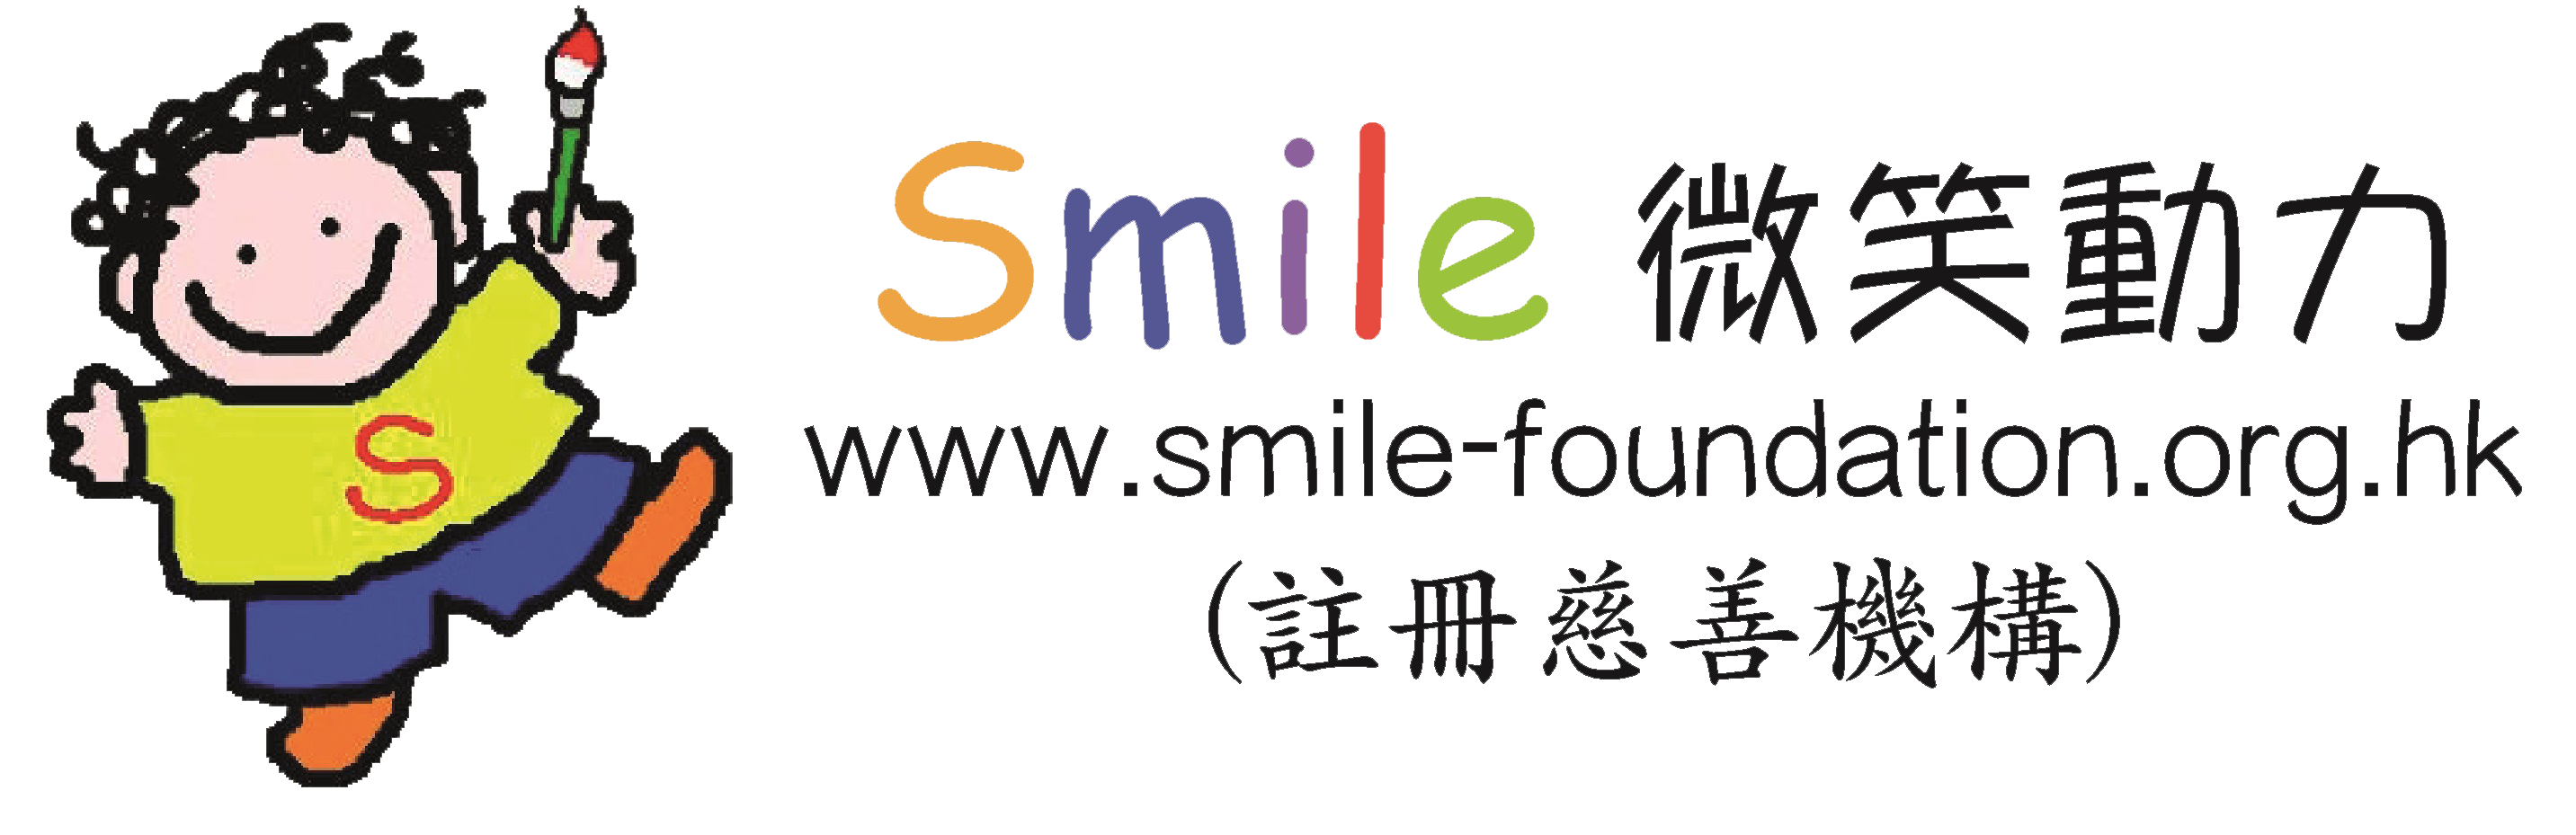 微笑動力慈善機構 Smile Foundation